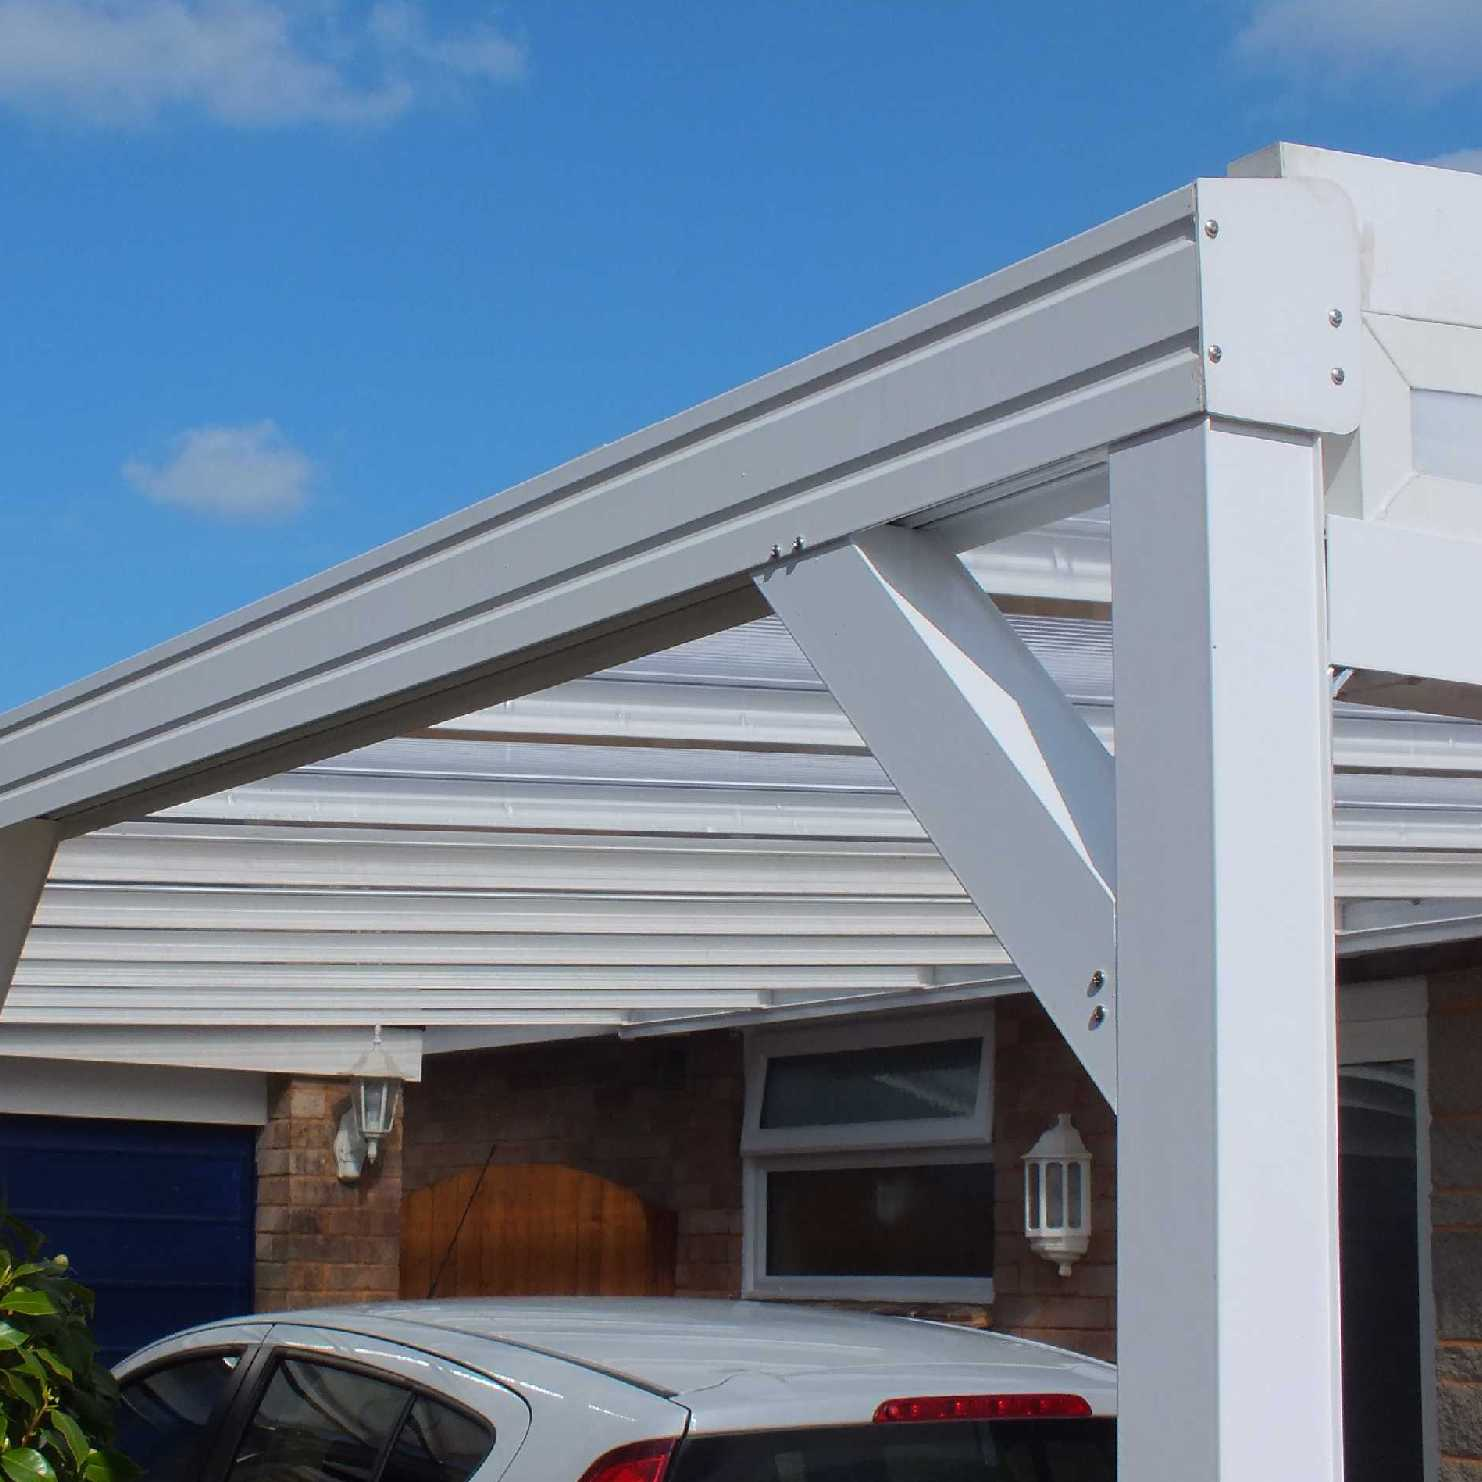 Great deals on Omega Smart Lean-To Canopy with 16mm Polycarbonate Glazing - 8.4m (W) x 4.0m (P), (4) Supporting Posts